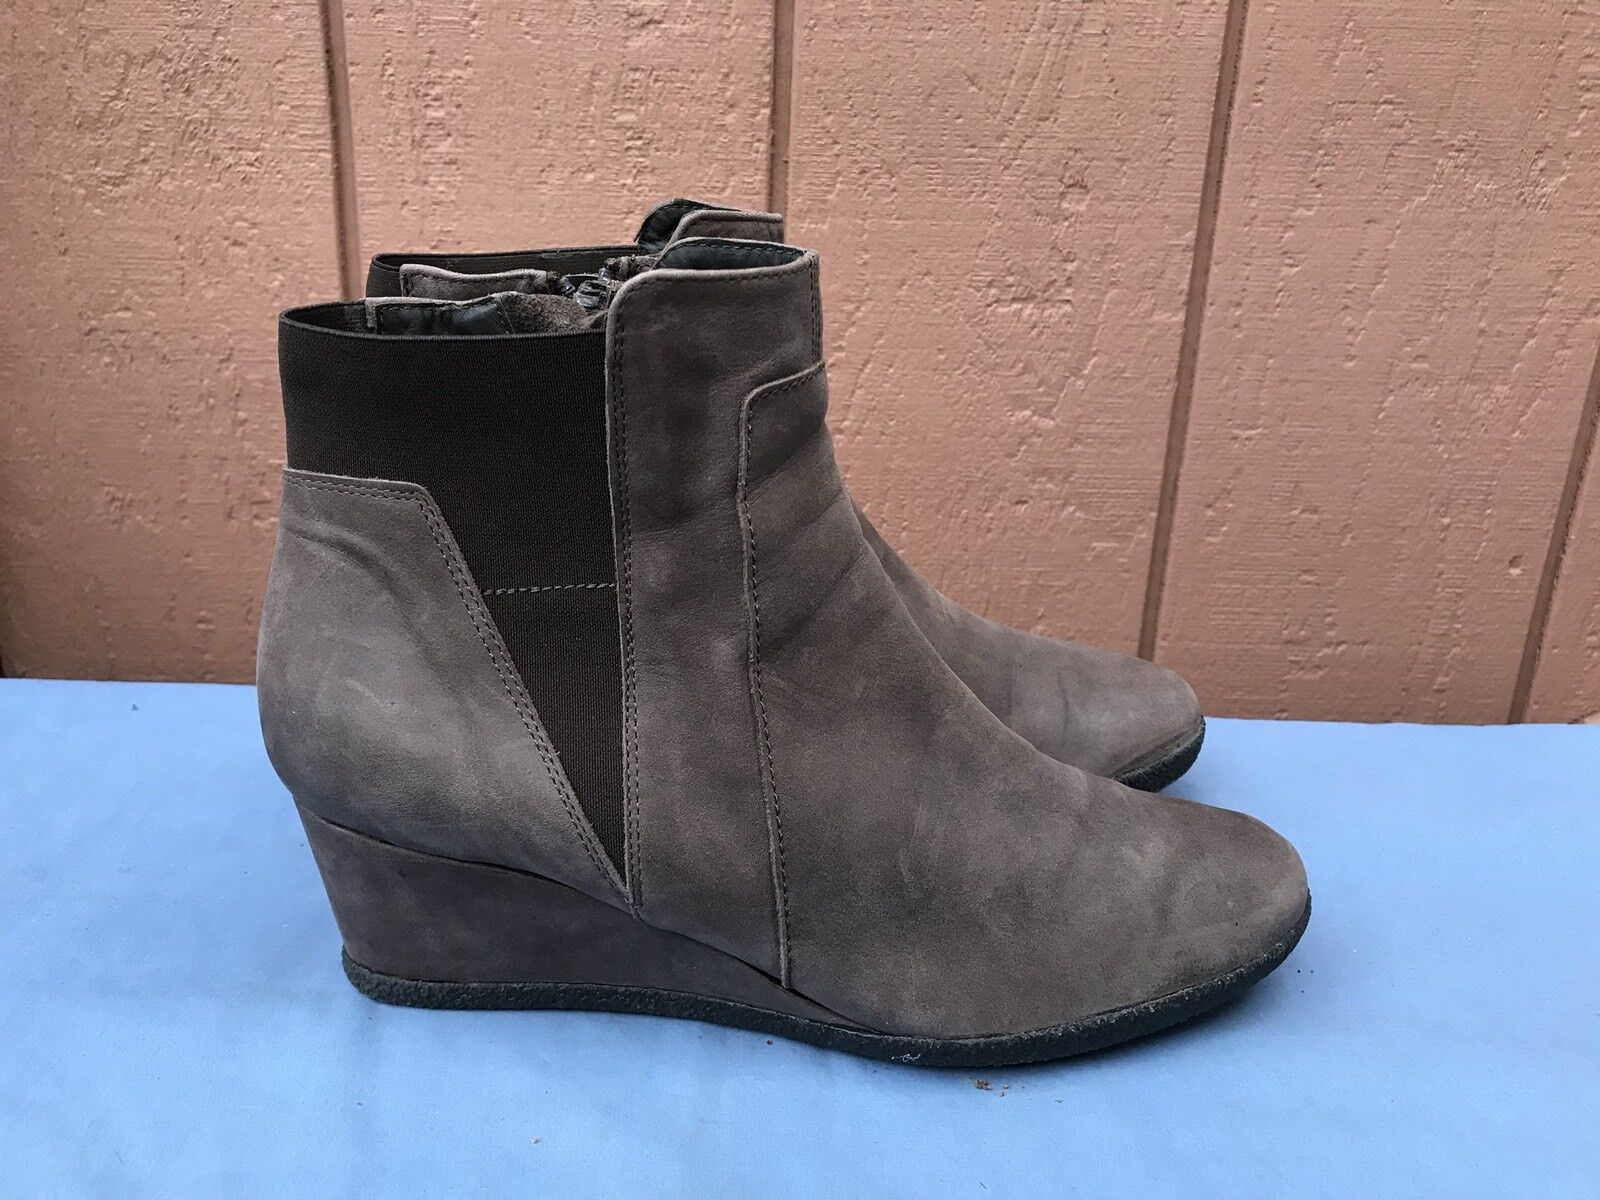 EUC Geox Respira Women's Size 42 US 11 Brown Leather Wedge Ankle Boots Shoes A4